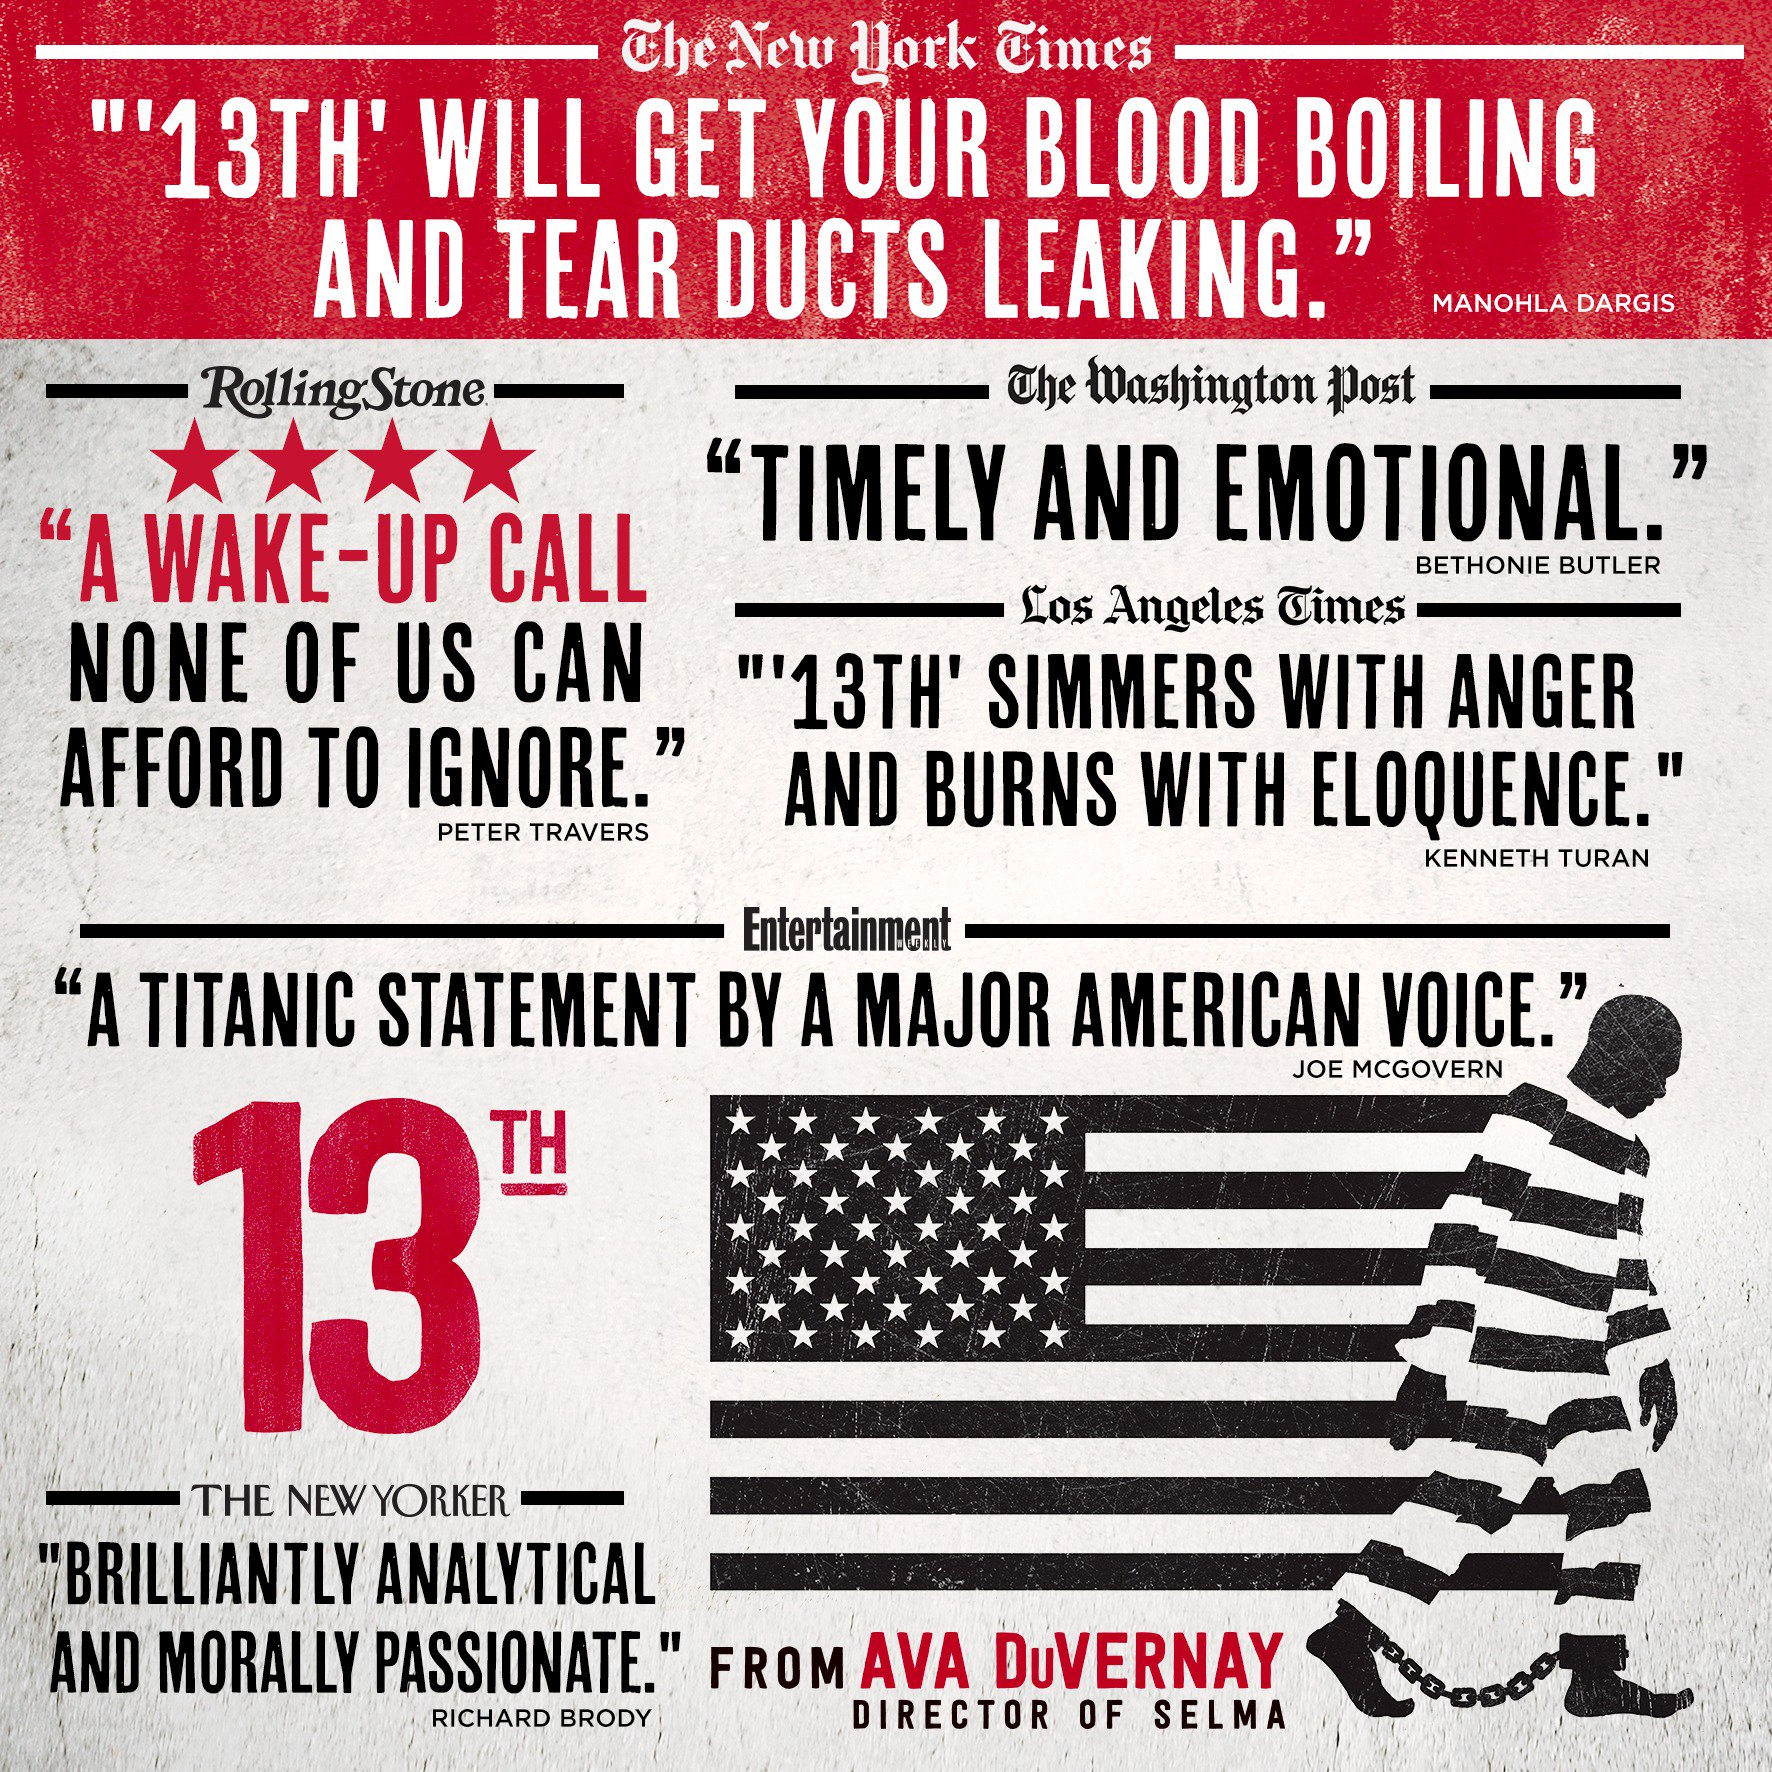 RT @13THFilm: Proud to announce @Ava's #13TH is on the Academy Awards Short List for Best Documentary Feature. https://t.co/aImZUw6QM1